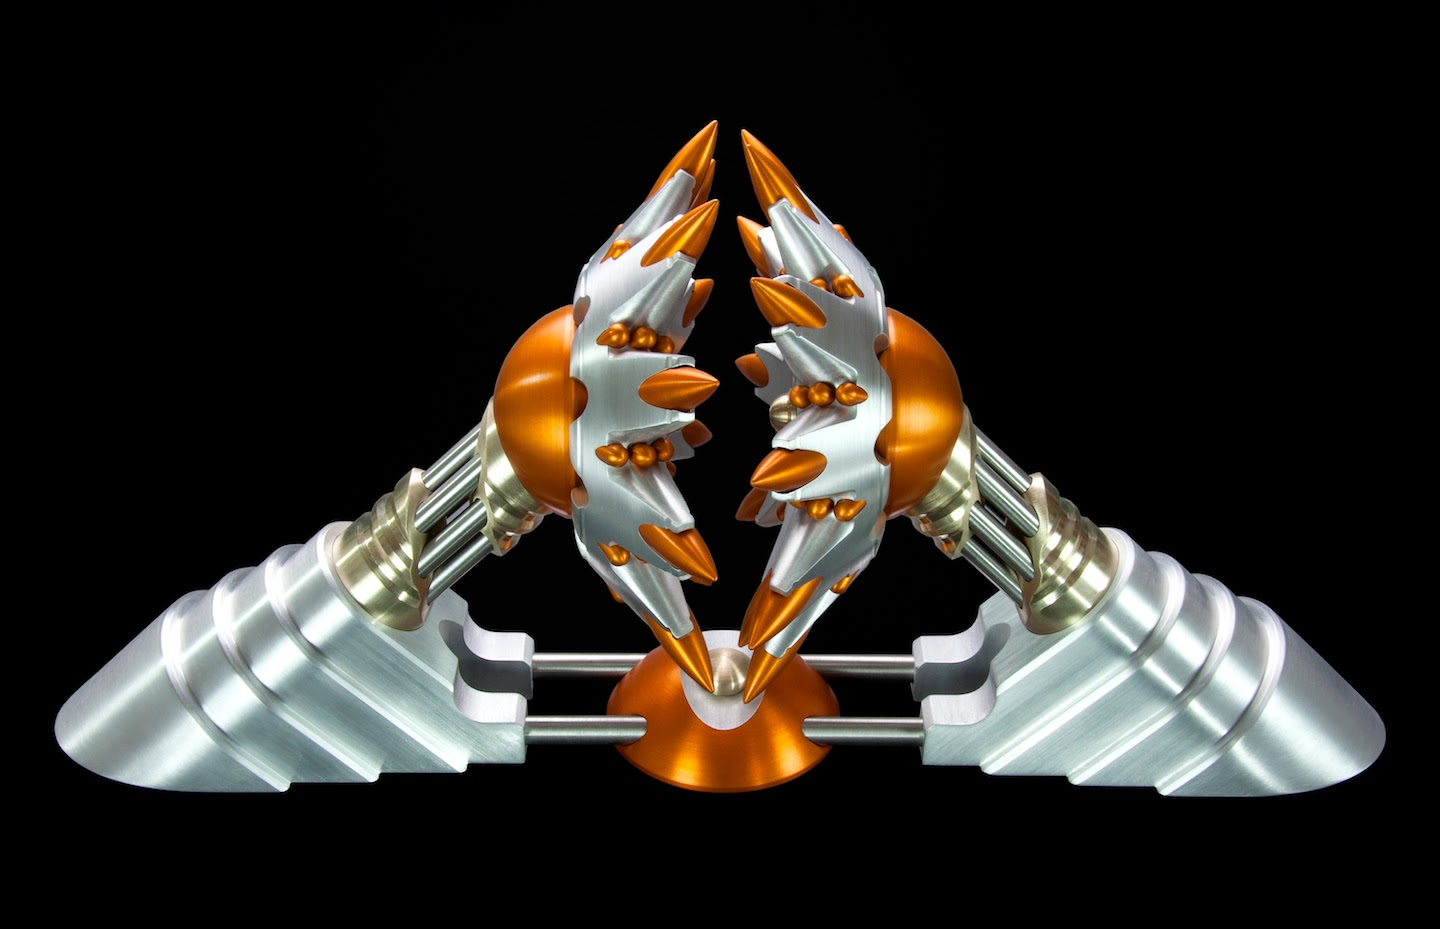 Machine Art, Machined Metal Sculpture, Metal Art (DQ2)